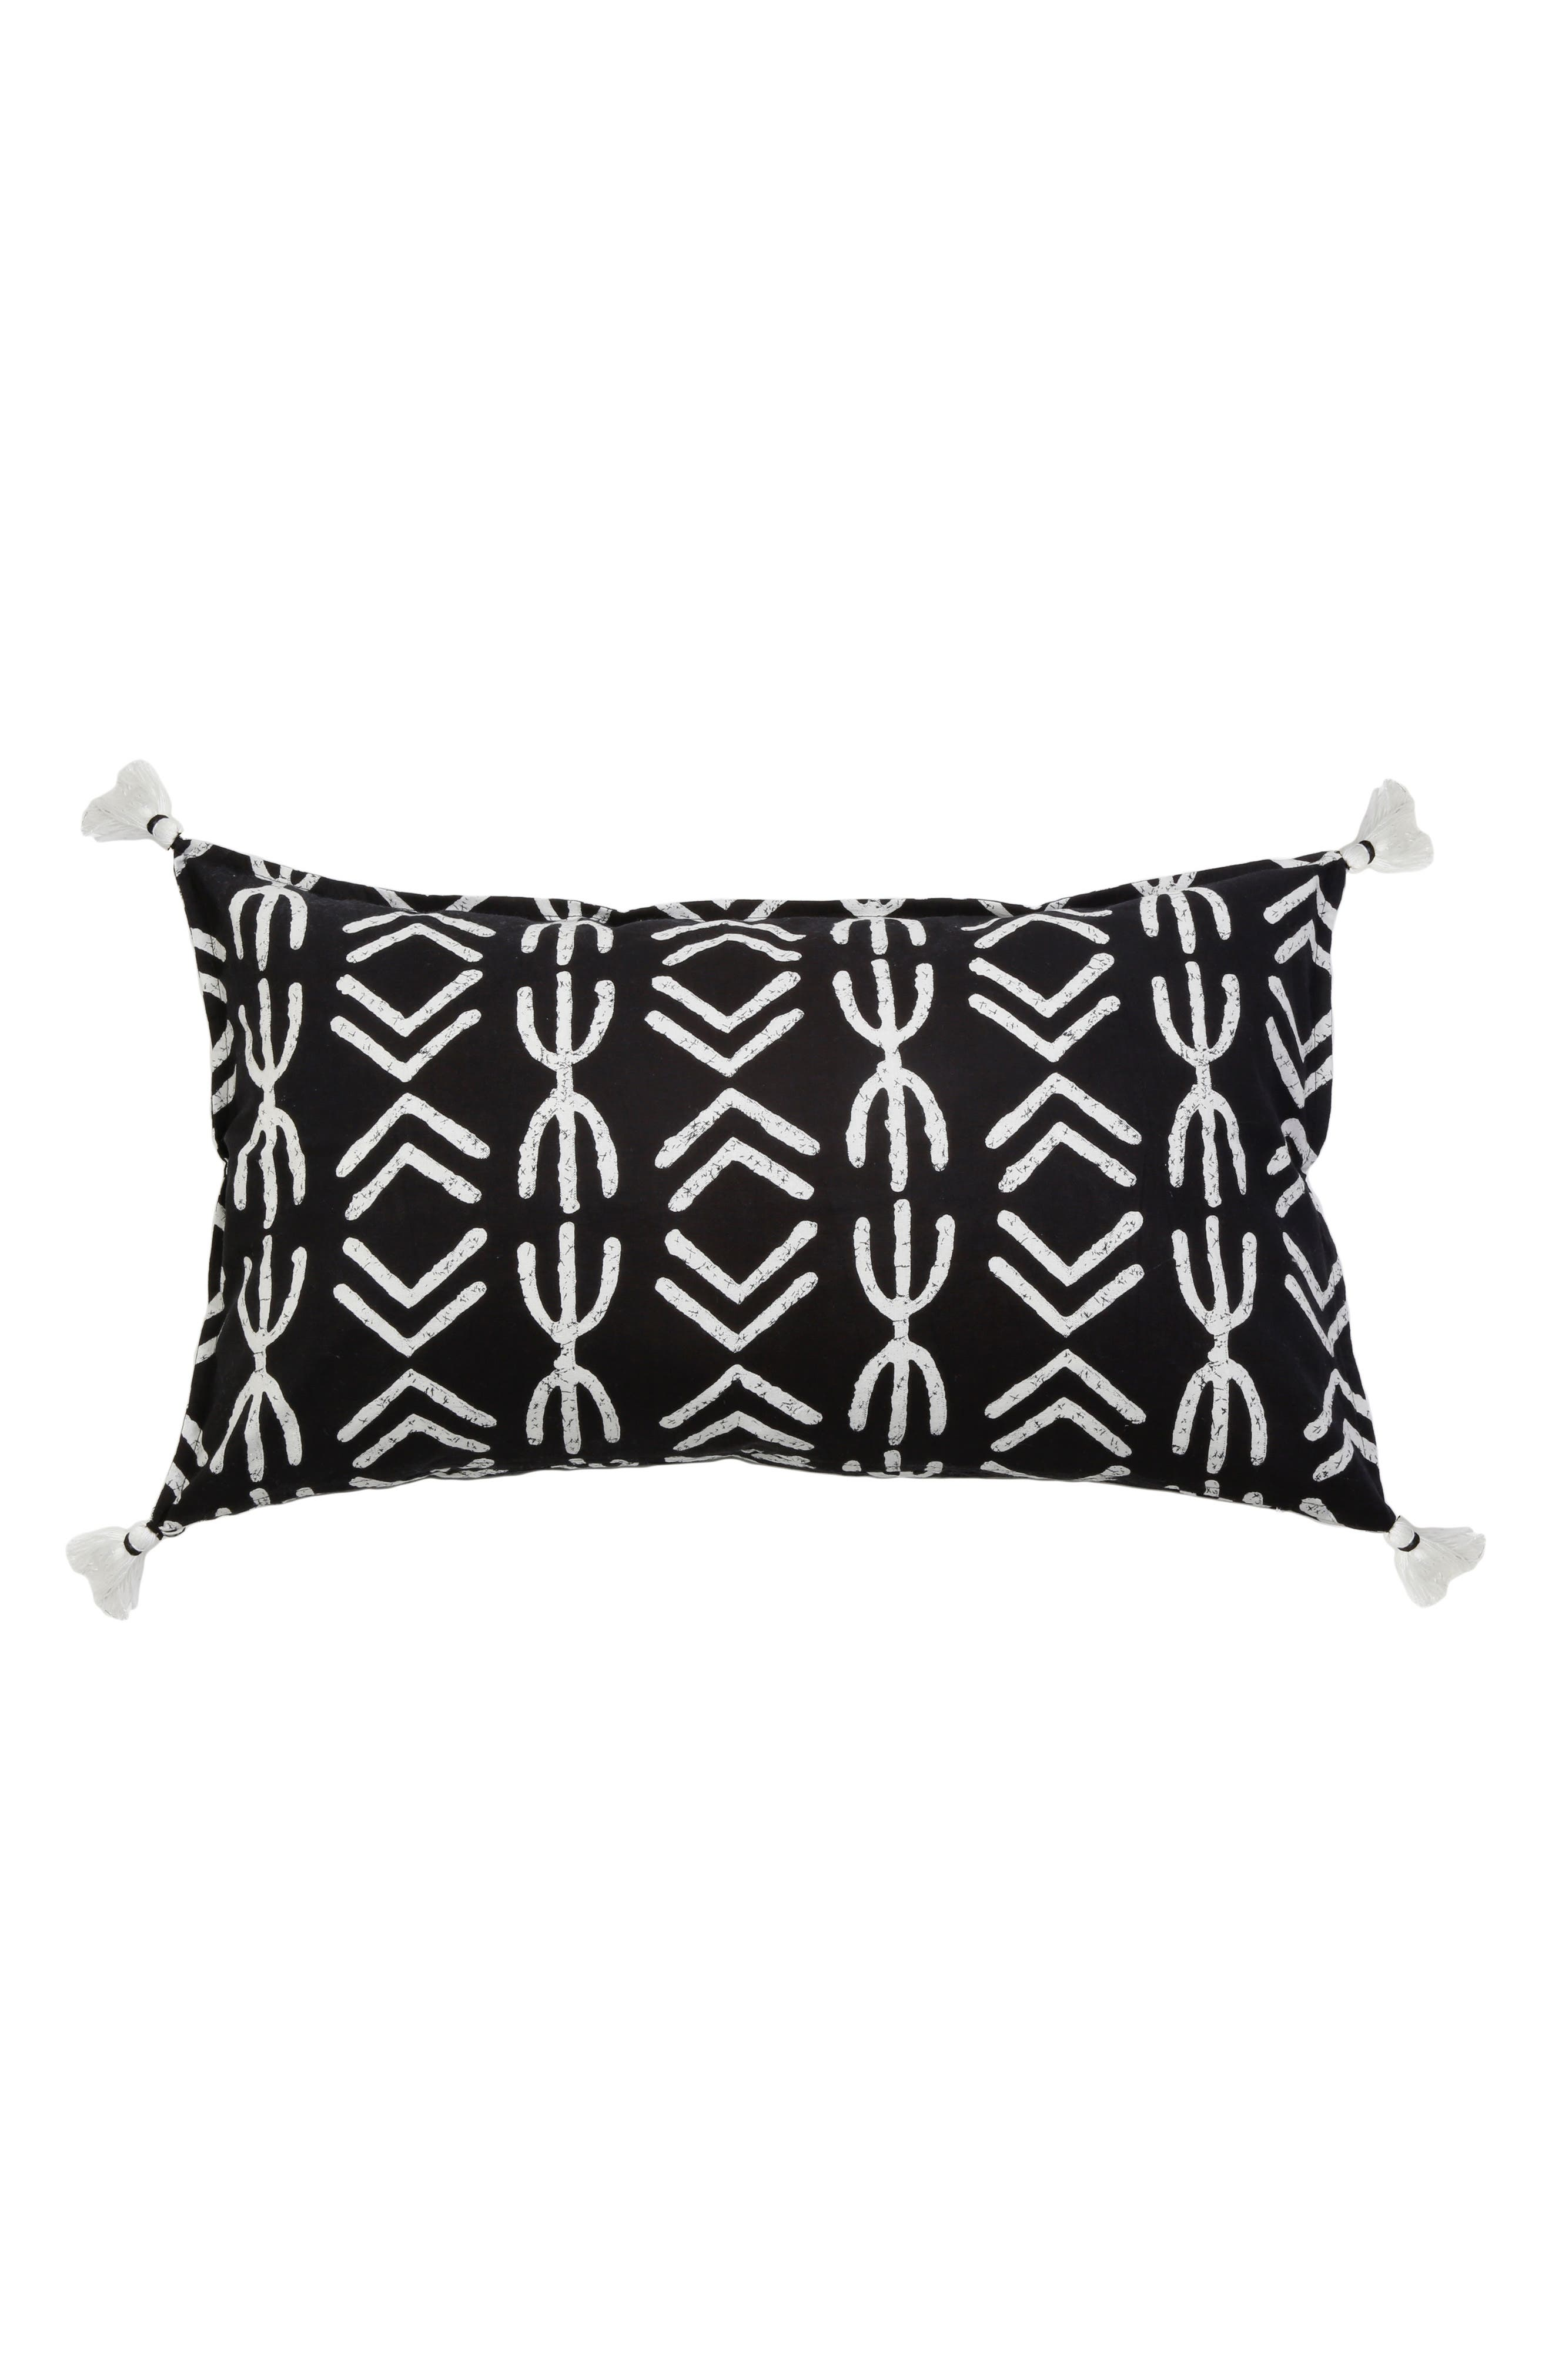 Main Image - Pom Pom at Home Spear Accent Pillow